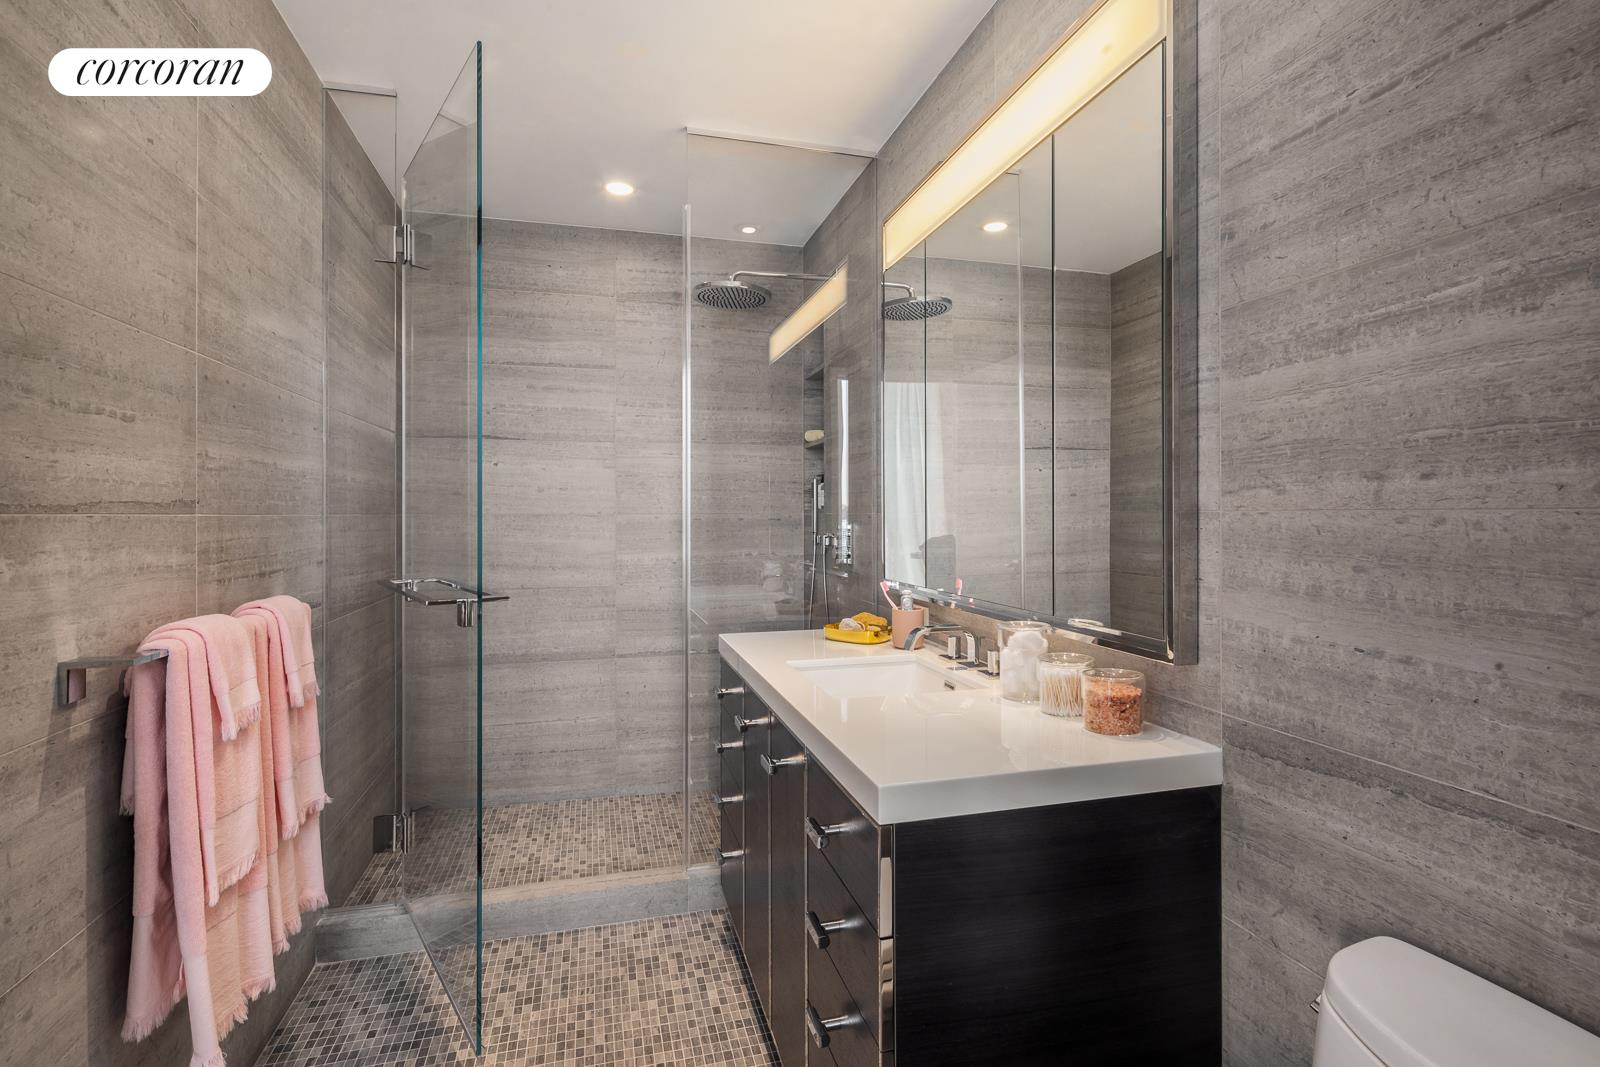 Apartment for sale at 252 South Street, Apt 11H